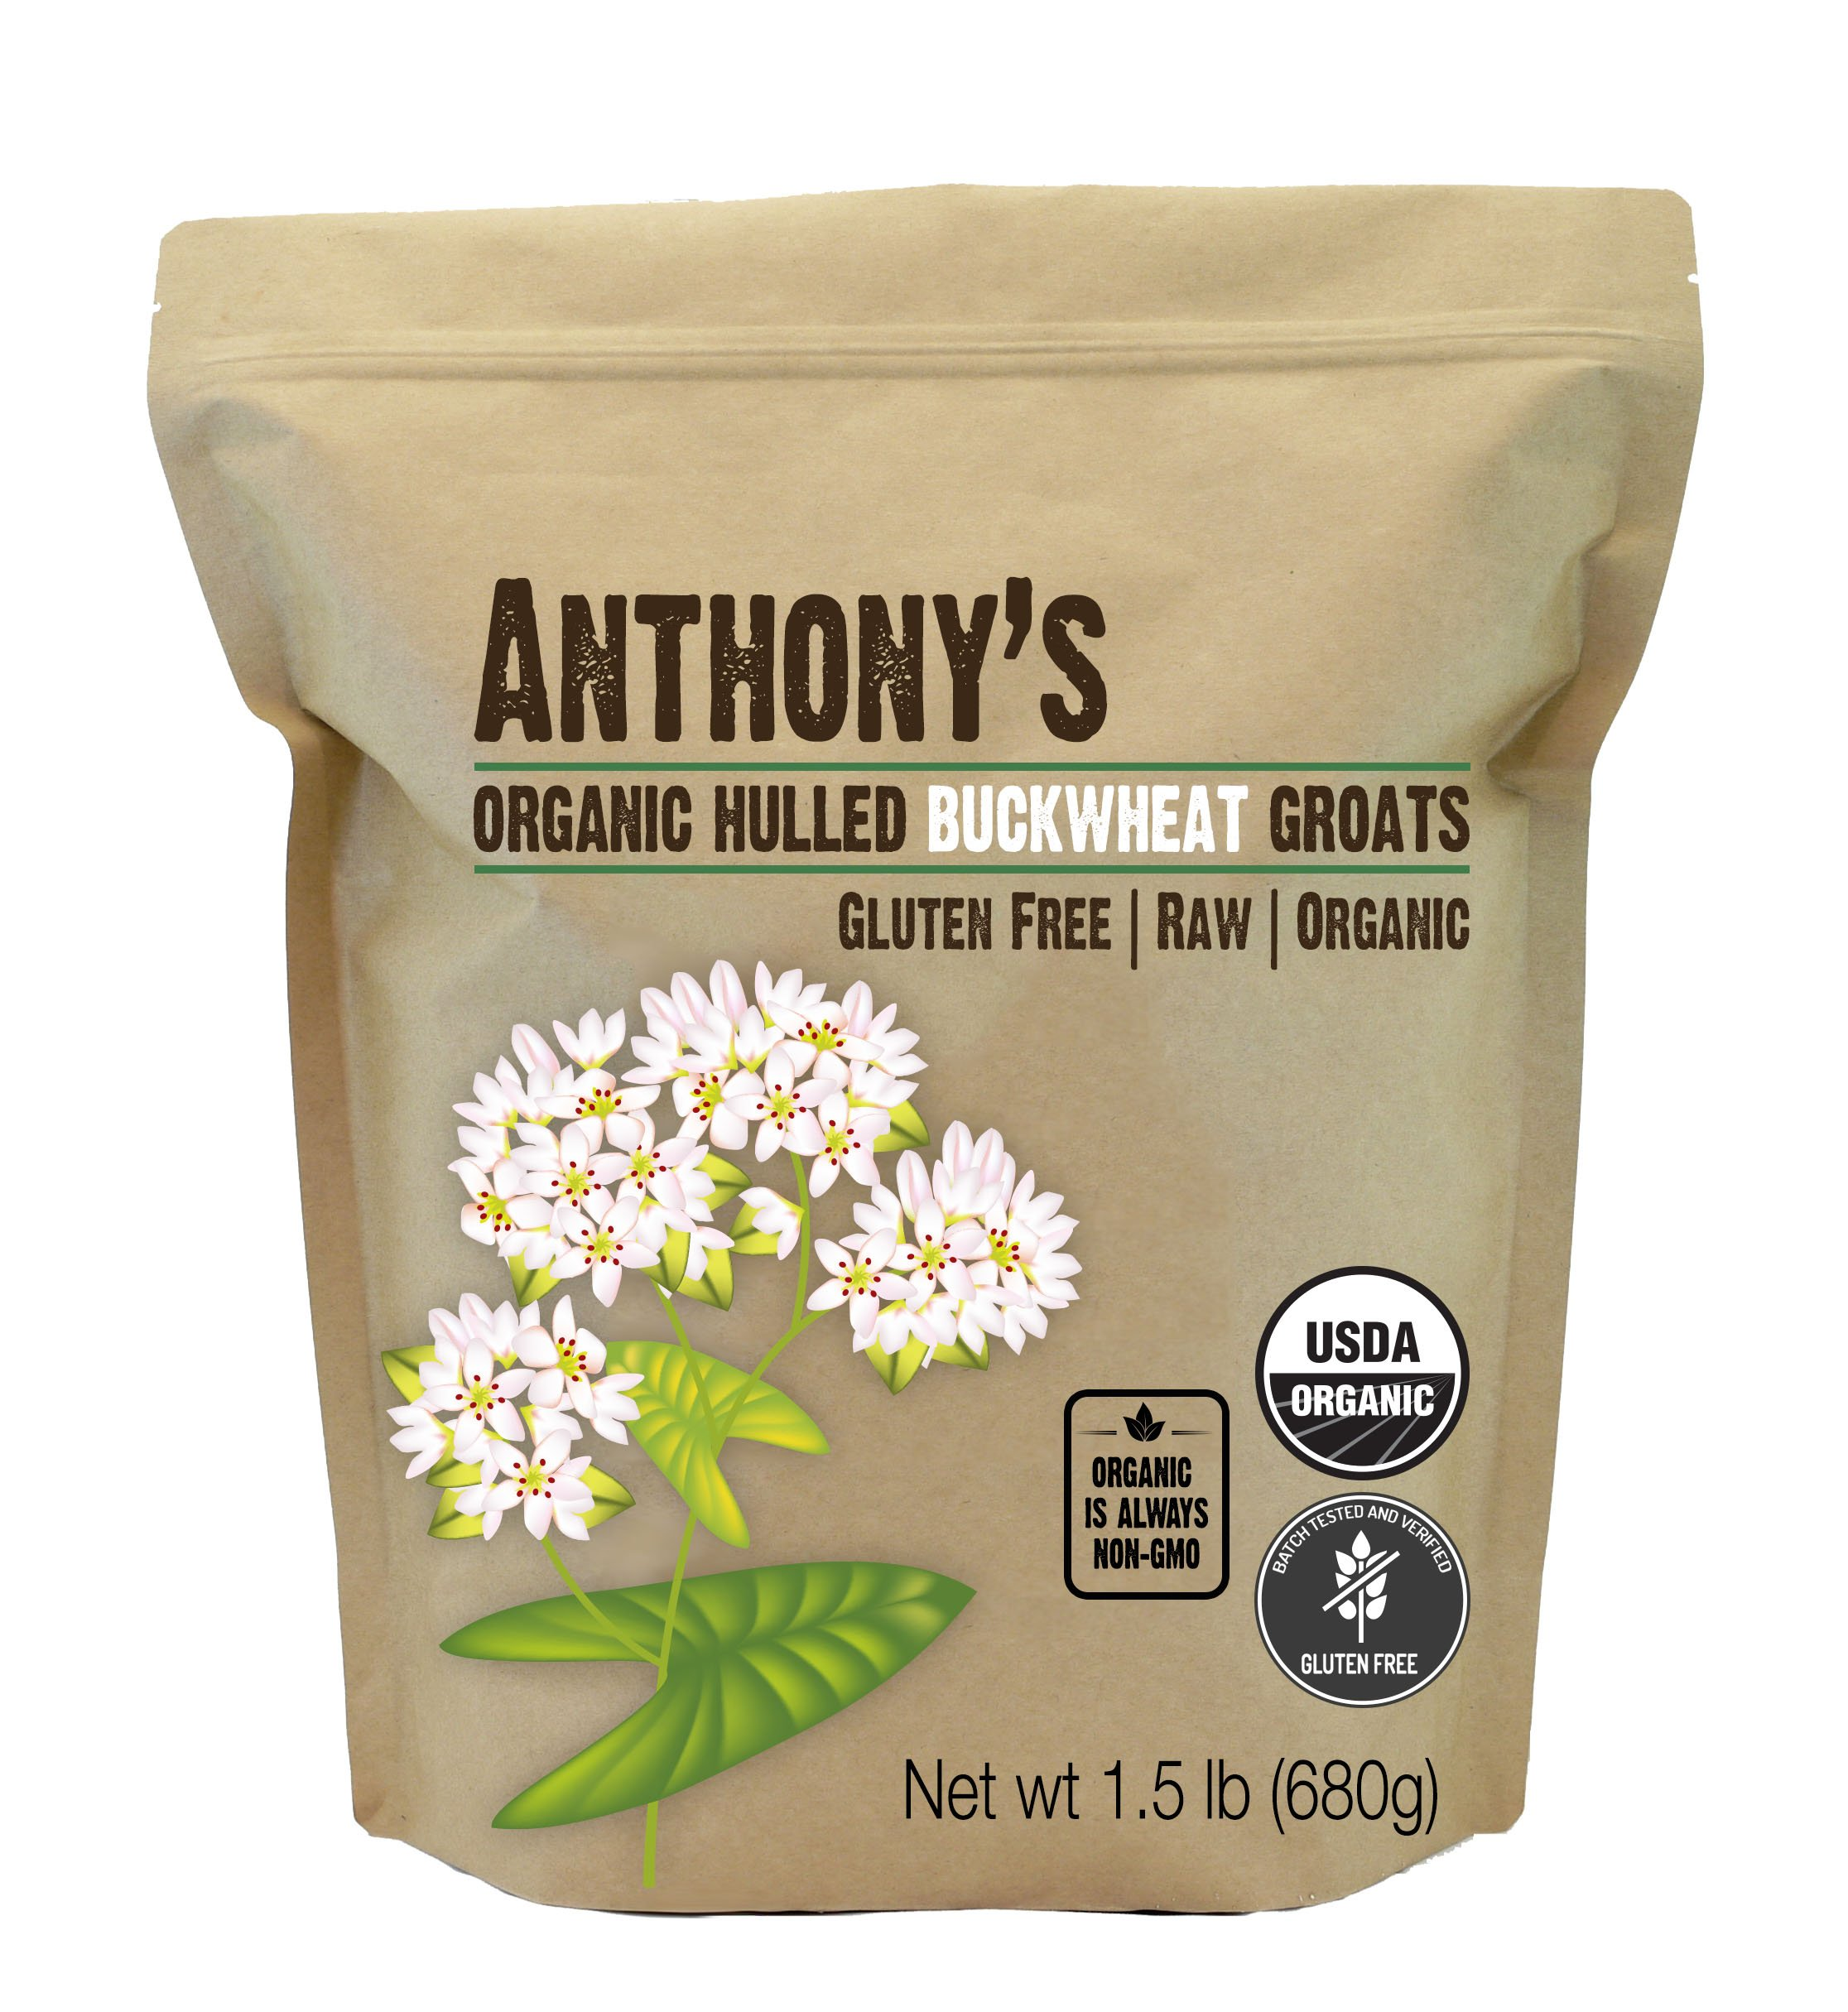 Anthony's Organic Hulled Buckwheat Groats (1.5lb), Raw, Grown in USA, Gluten-Free by Anthony's (Image #4)